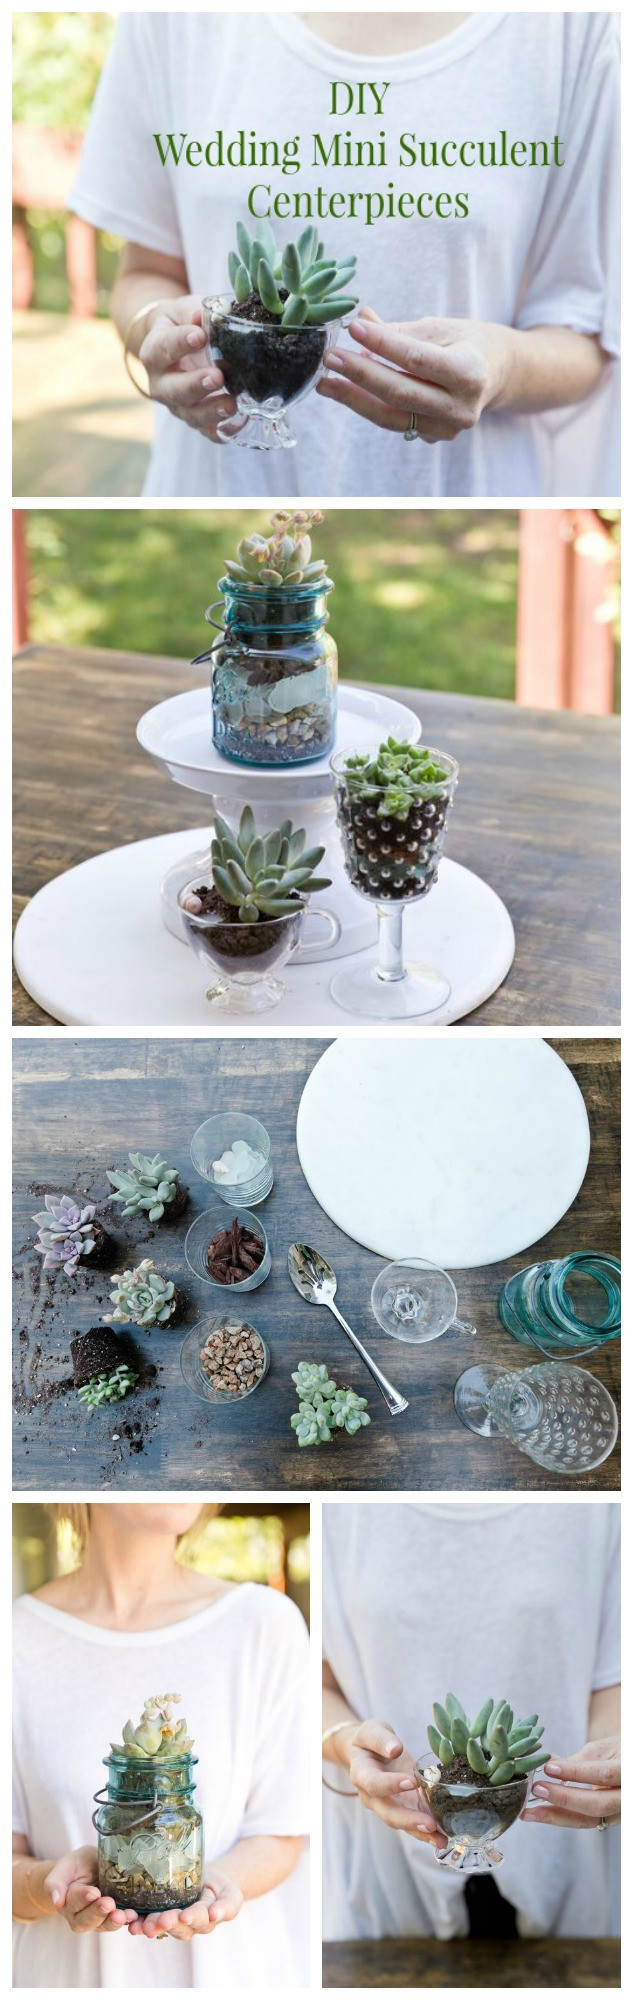 Best ideas about DIY Centerpieces For Wedding . Save or Pin DIY Wedding Succulent Centerpieces Rustic Wedding Chic Now.